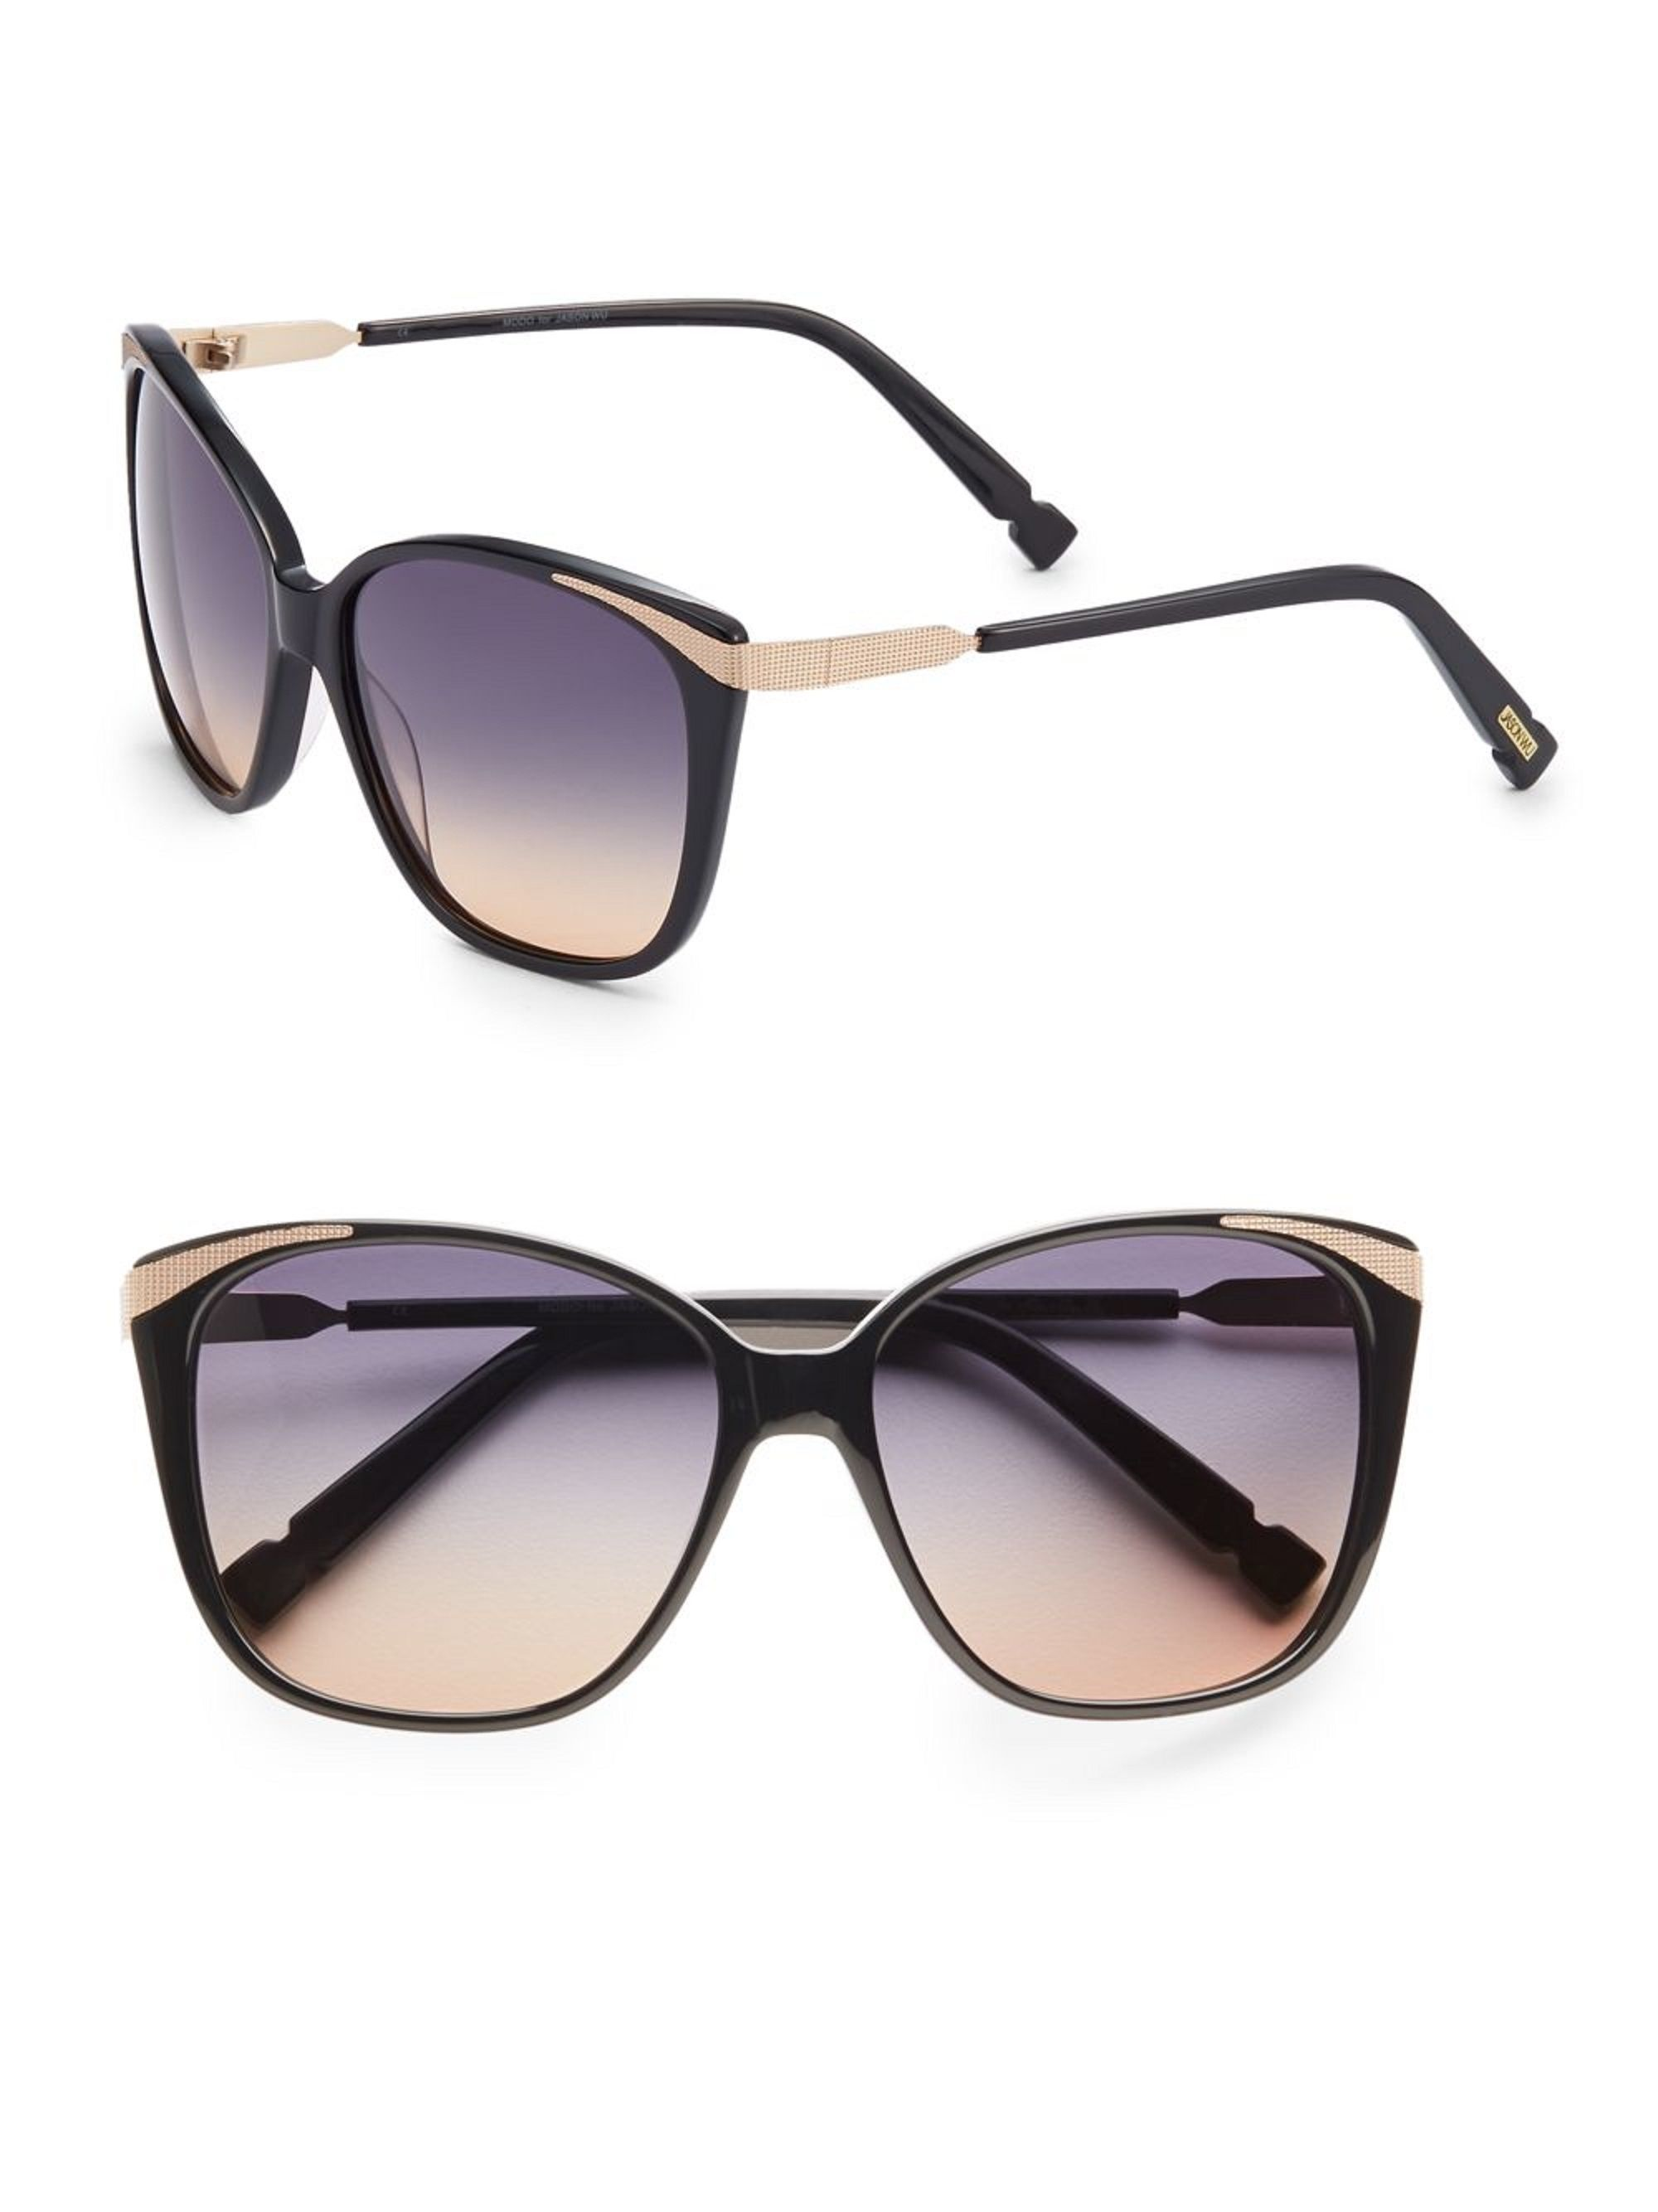 d63906d4b7f Free shipping and guaranteed authenticity on Nadya 57MM Cat's-Eye  Sunglasses at Tradesy. Oversized cat's-eye style with beaded metal detail.